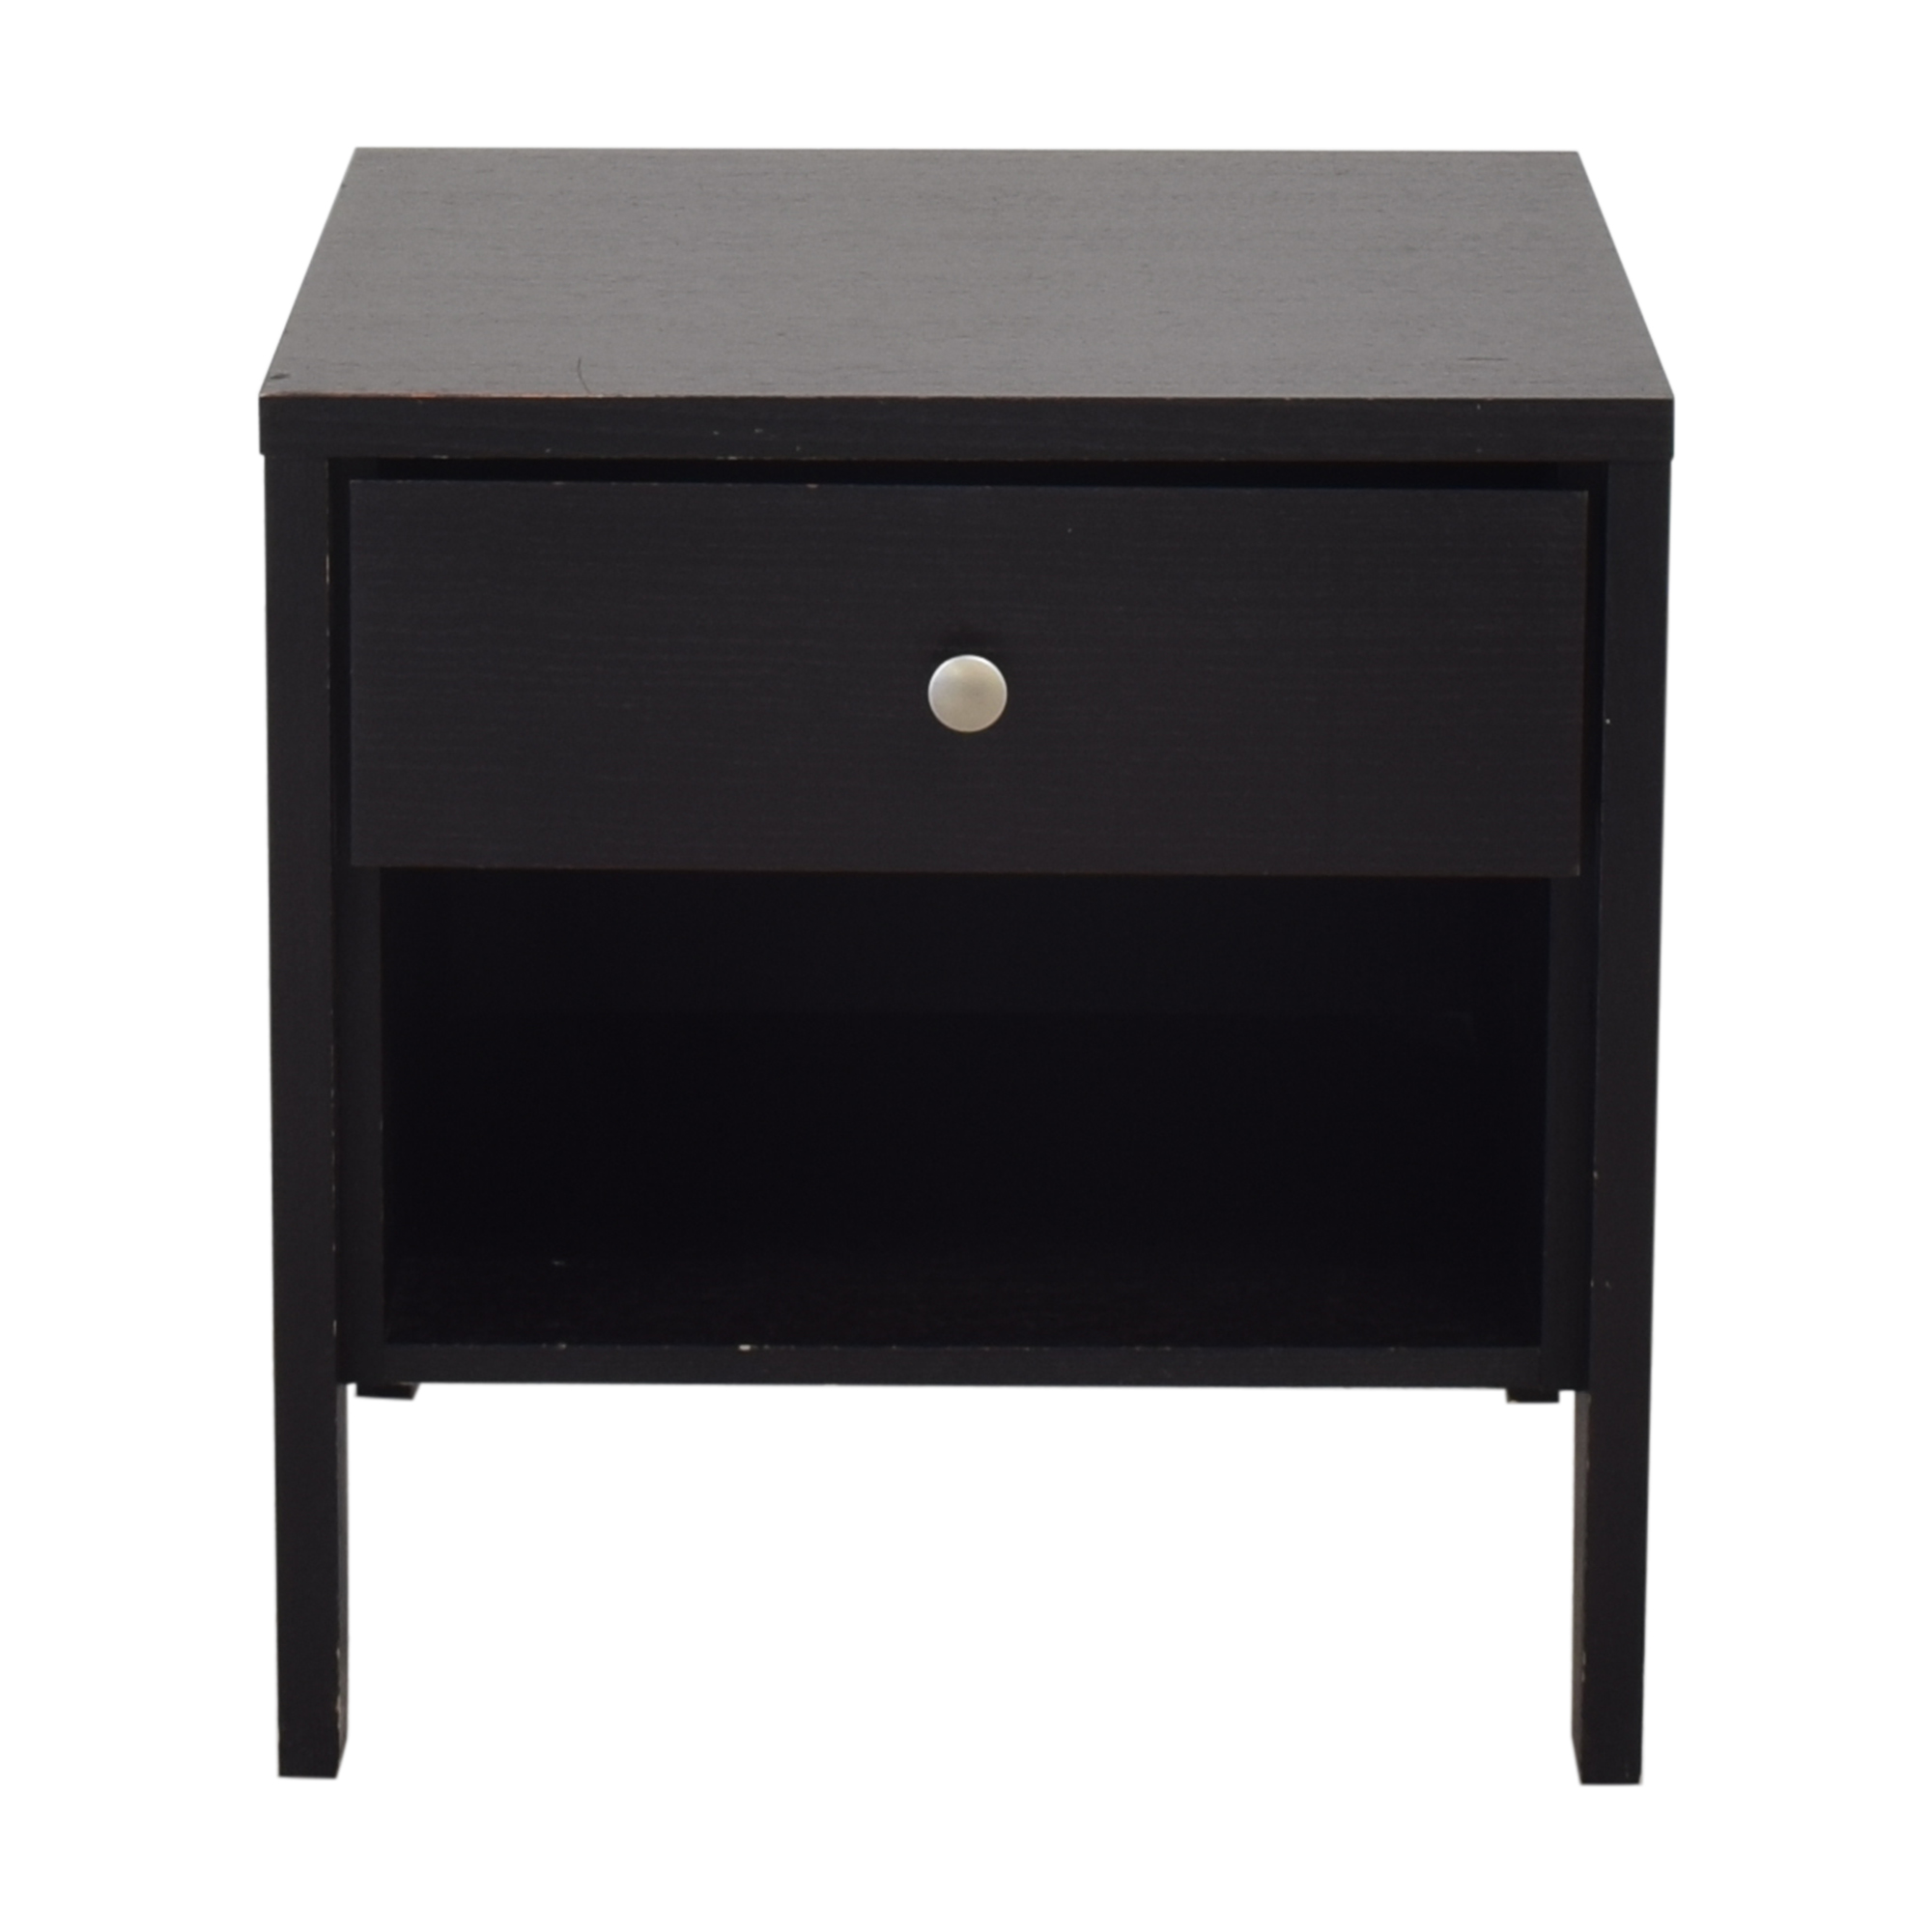 Crate & Barrel Crate & Barrel Nightstand on sale